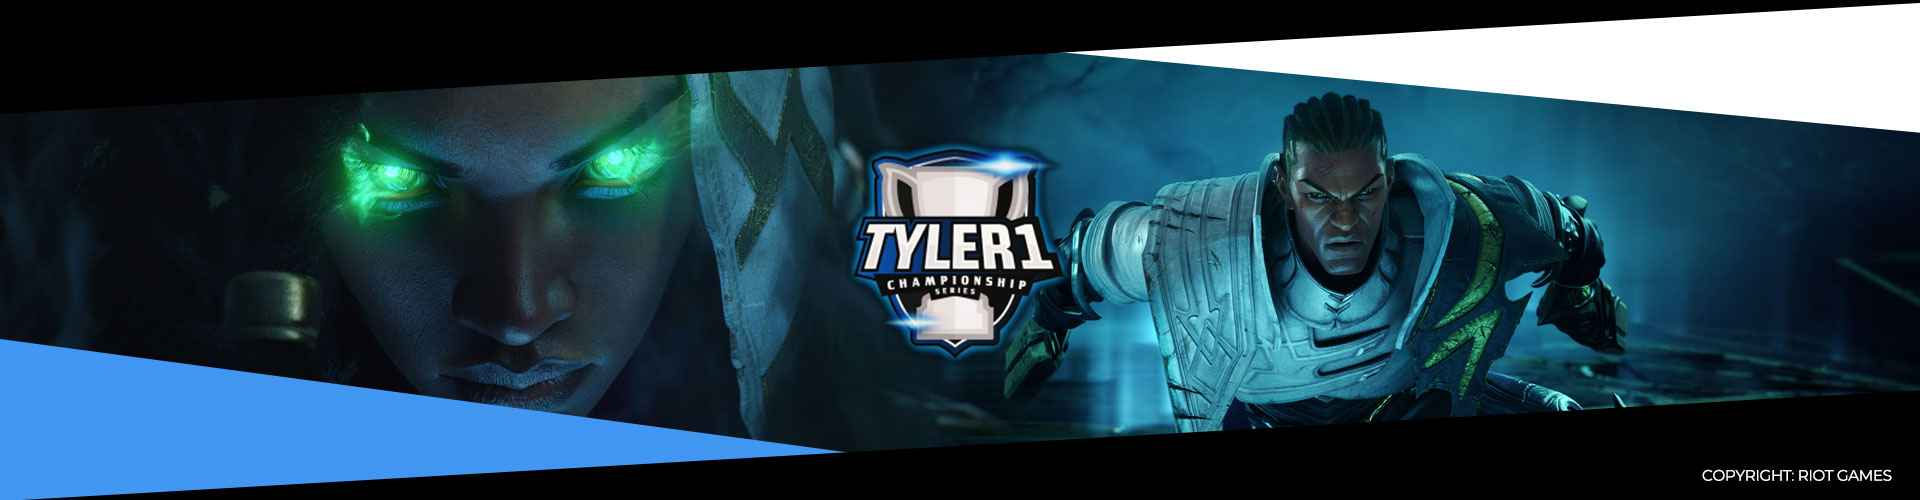 Tyler1 Championship Series Day 2 Recap Article